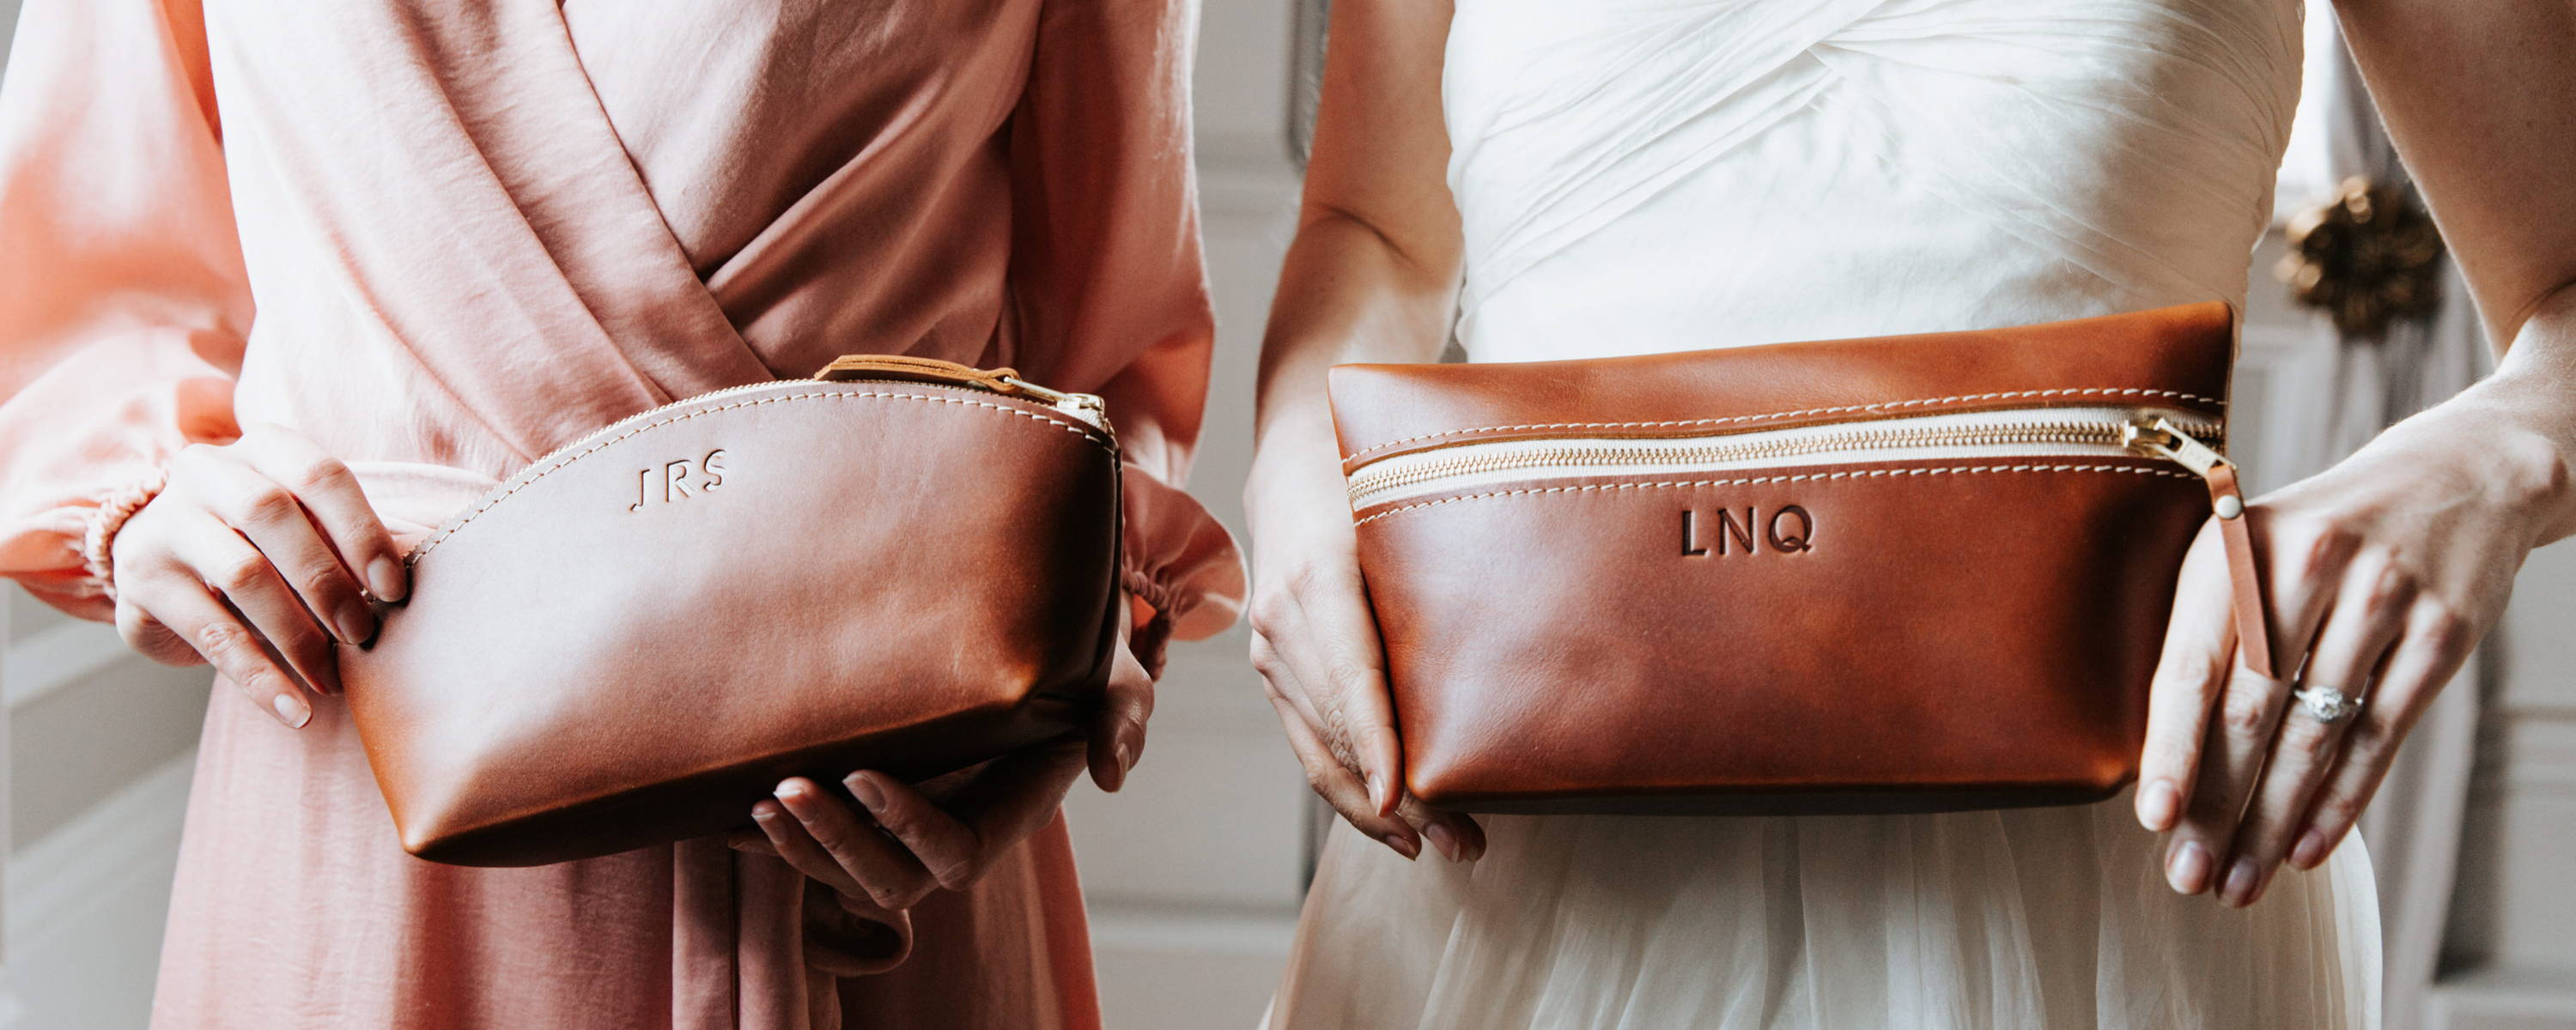 bride and bridesmaid holding personalized makeup bags